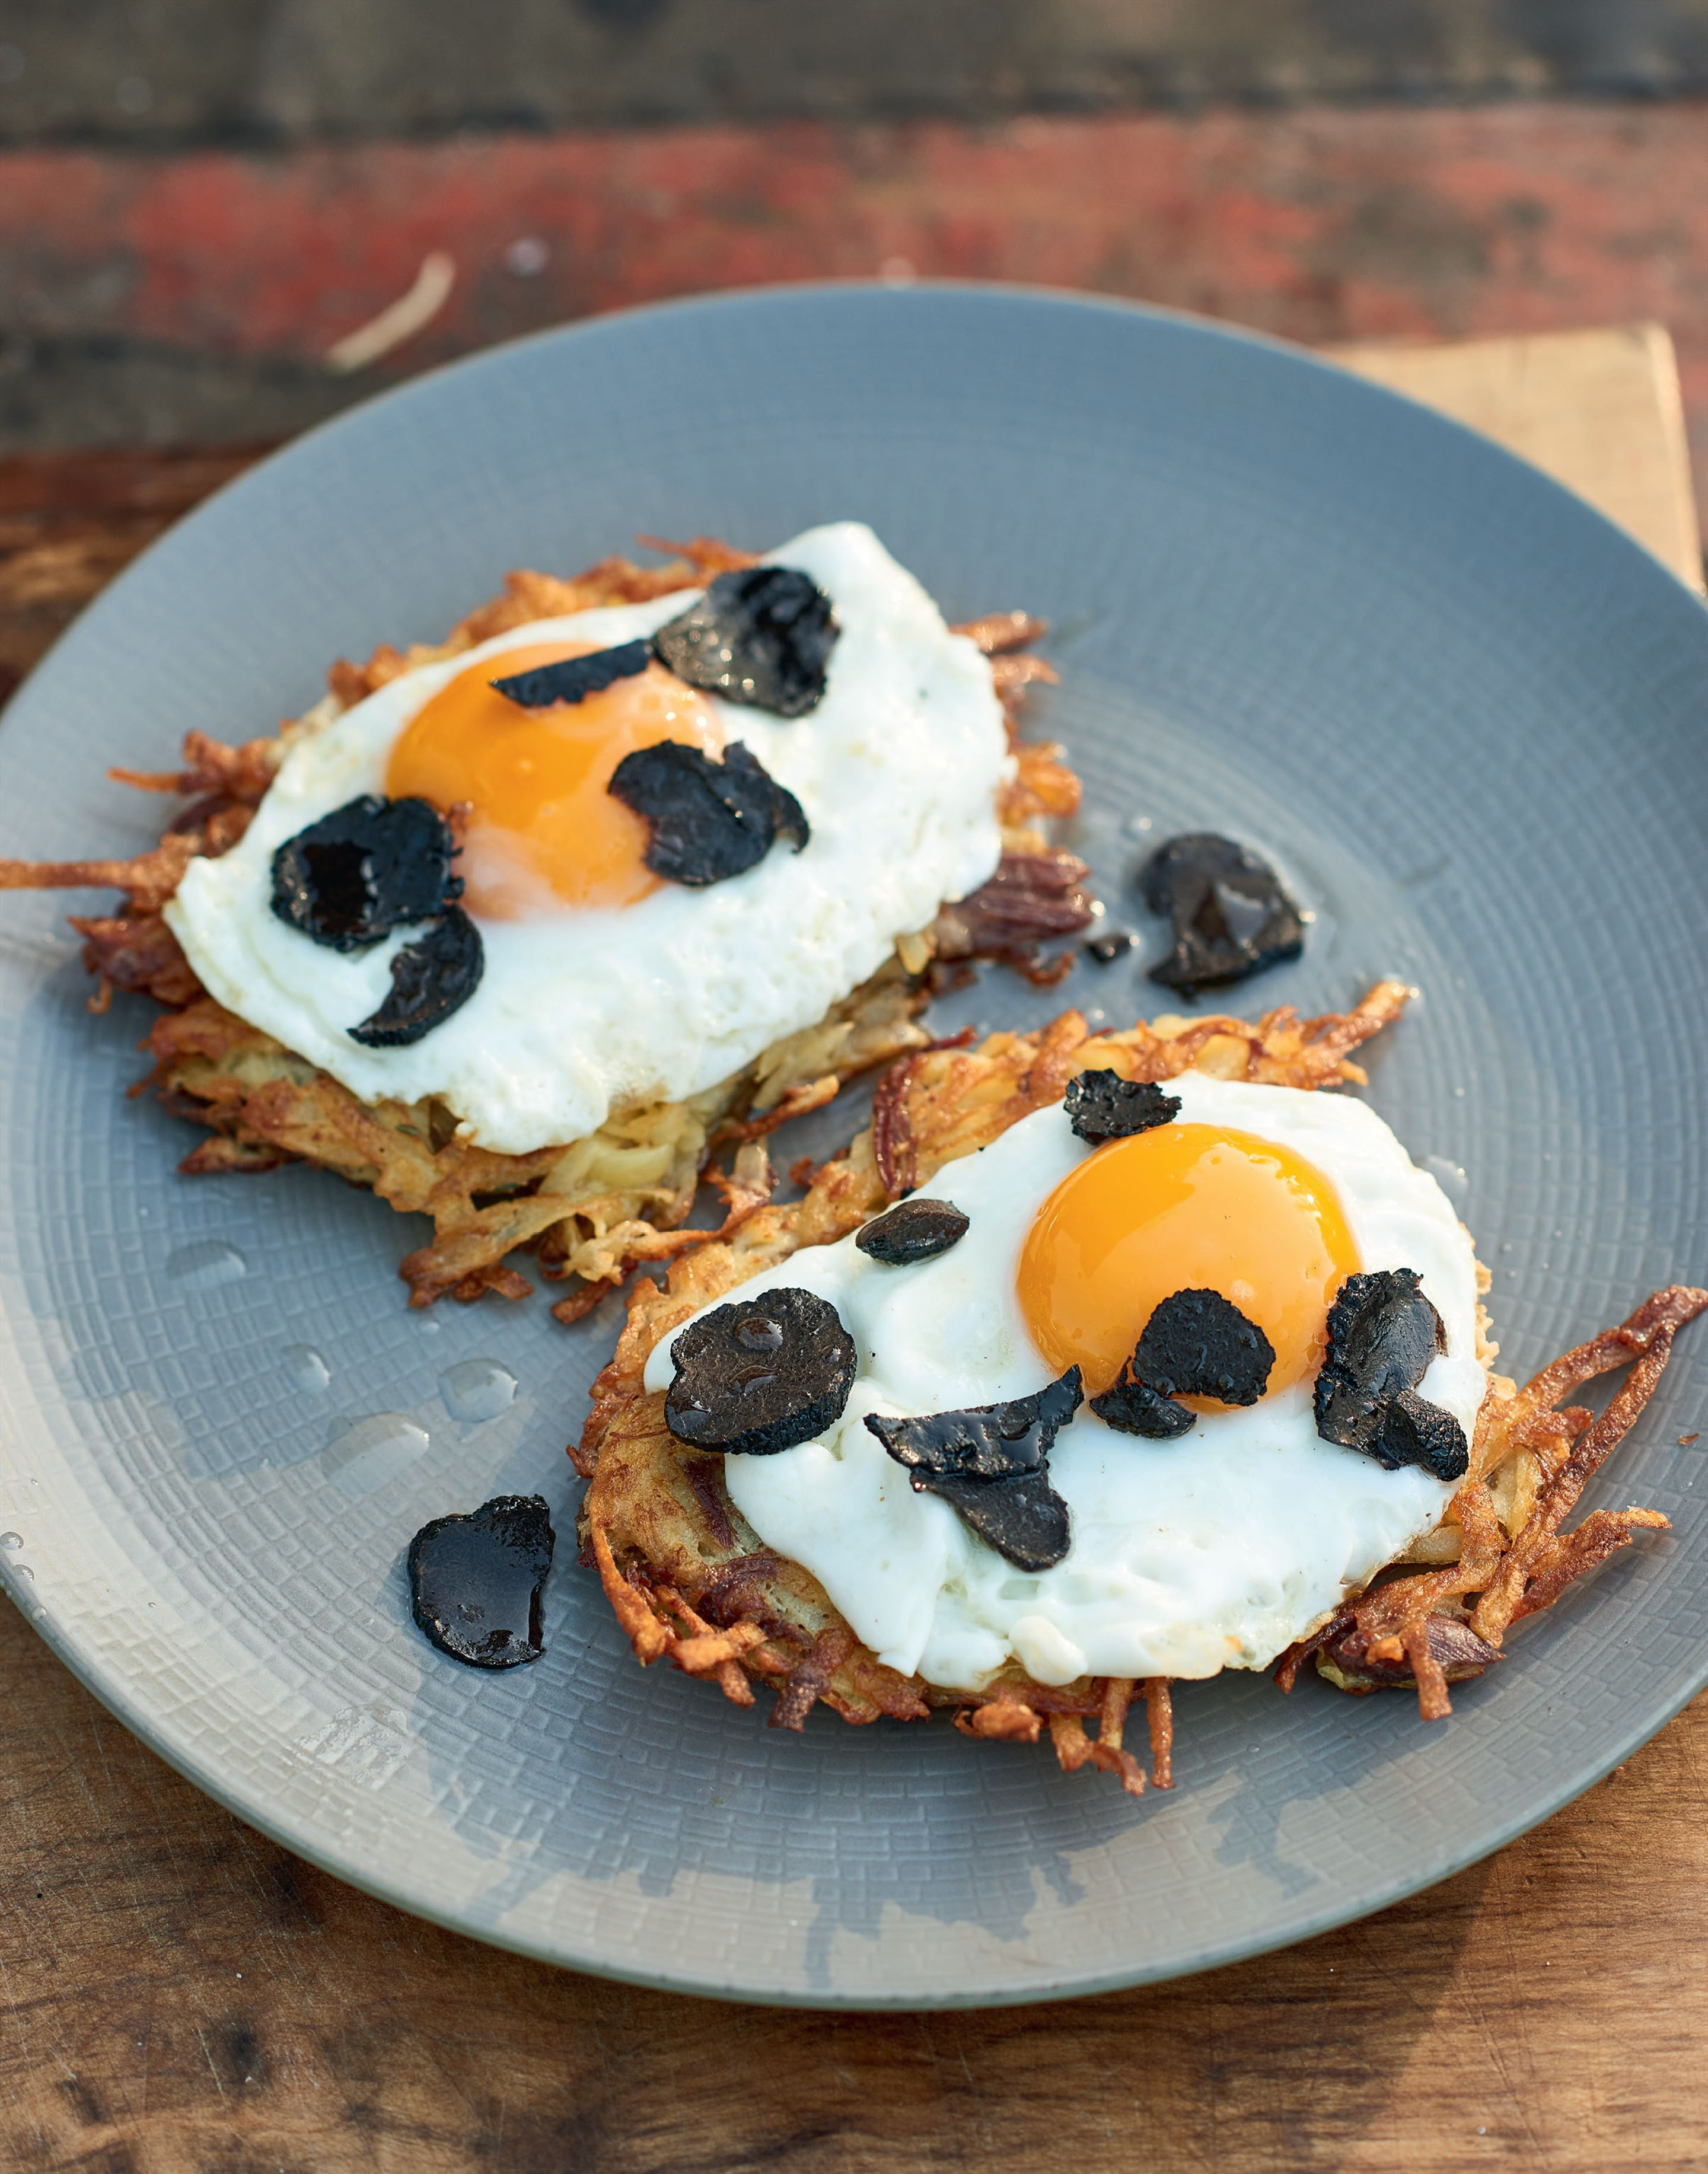 Confit duck rosti with fried hen's egg